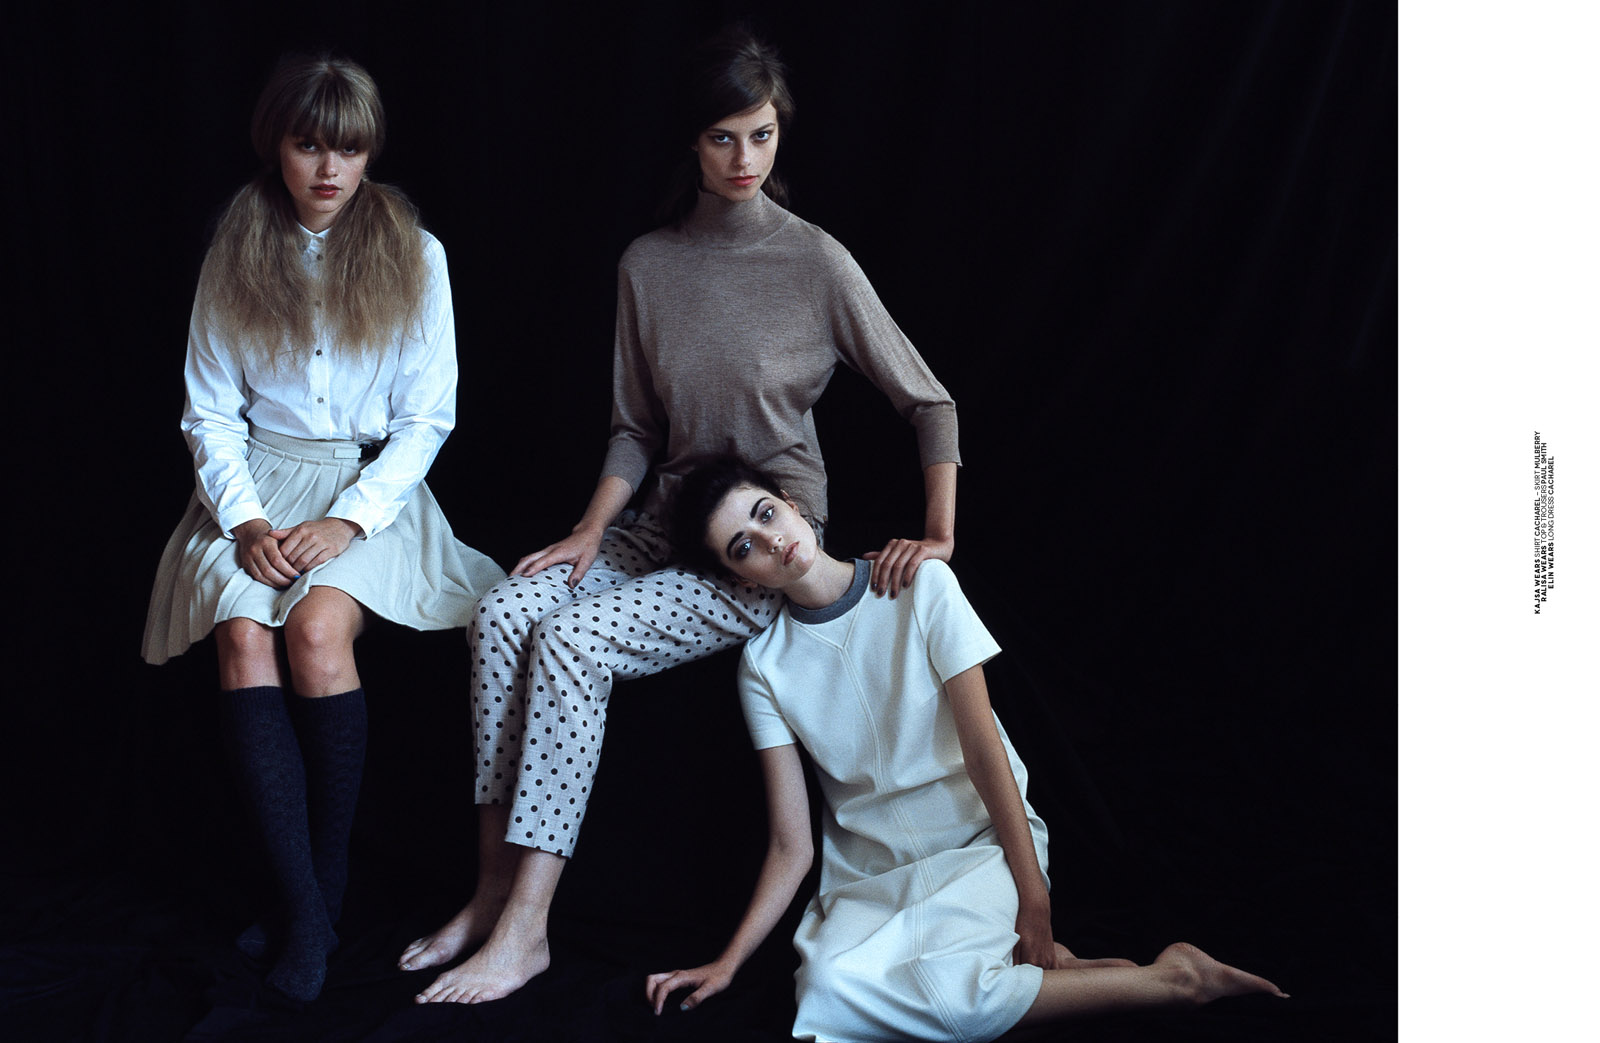 Kajsa wears shirt Cacharel - skirt Mulberry; Ralisa wears top & trousers Paul Smith; Elin wears long dress Cacharel.